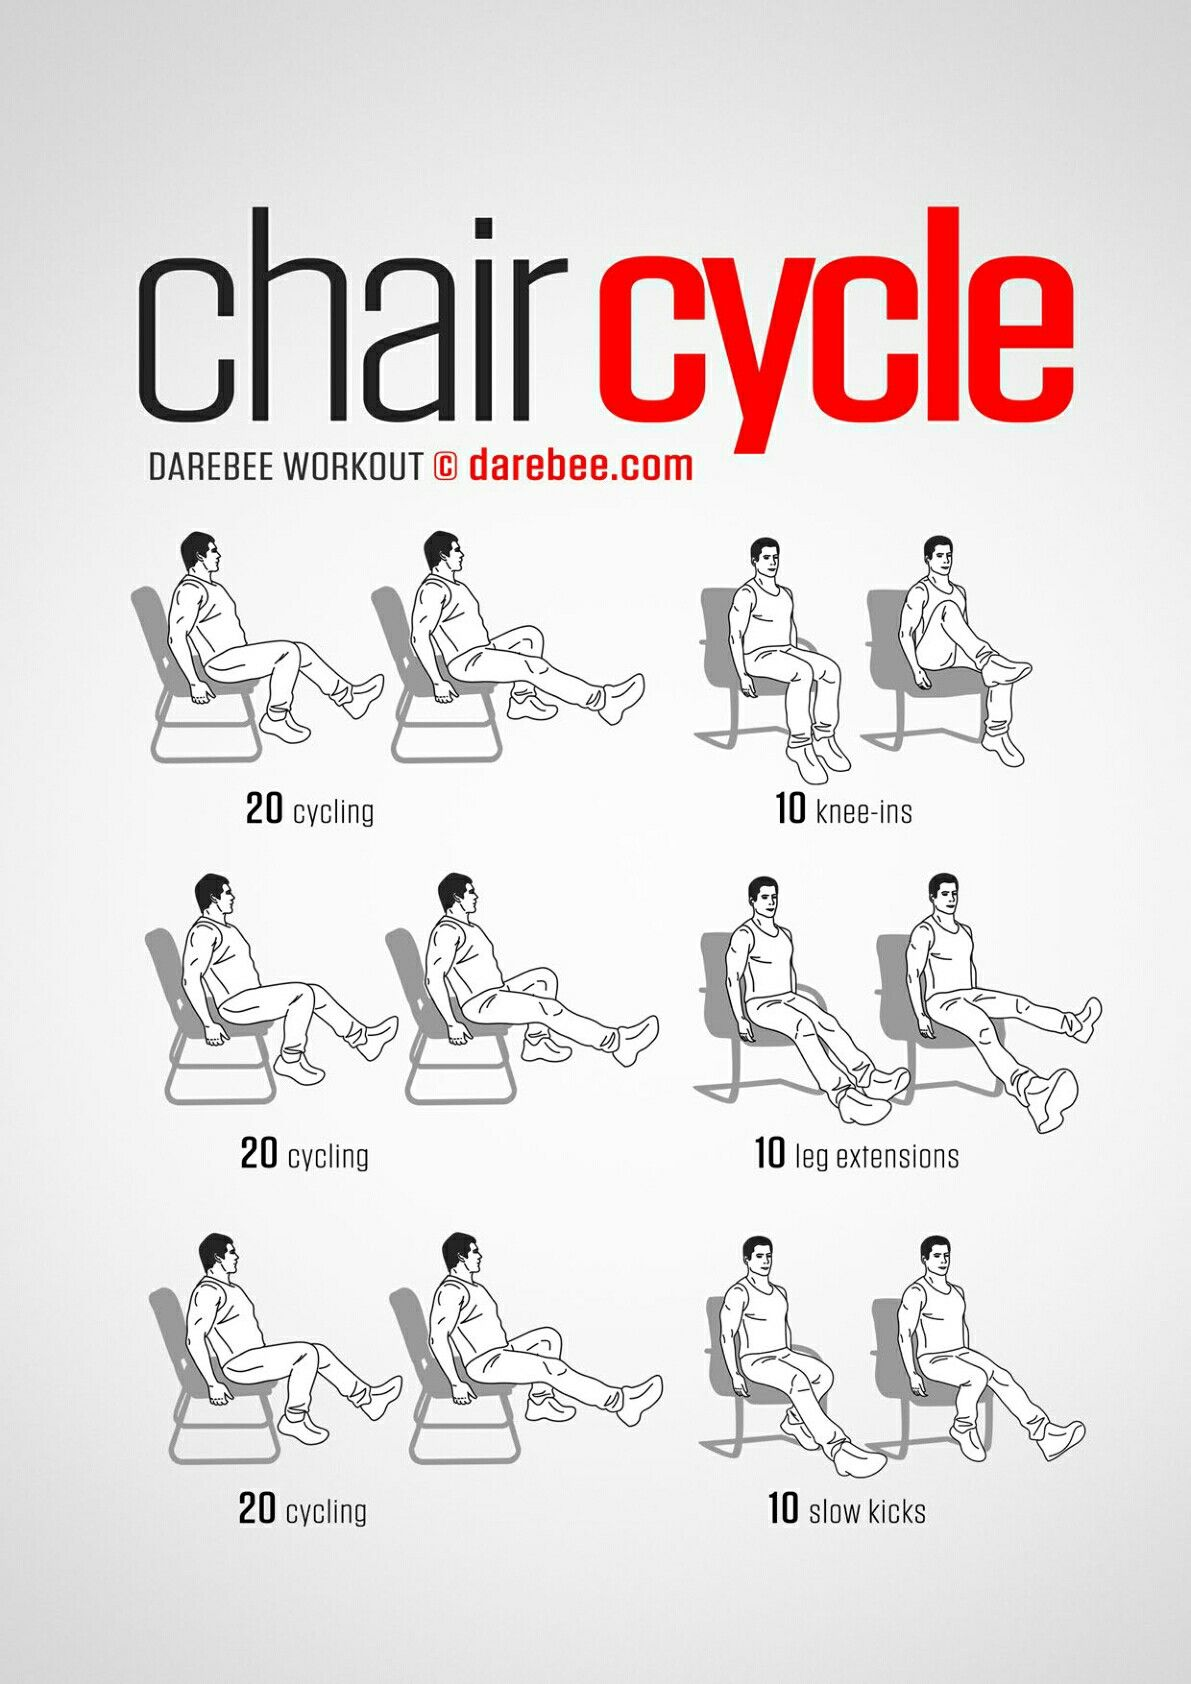 Chair Cycle Office Workout Chair exercises, Senior